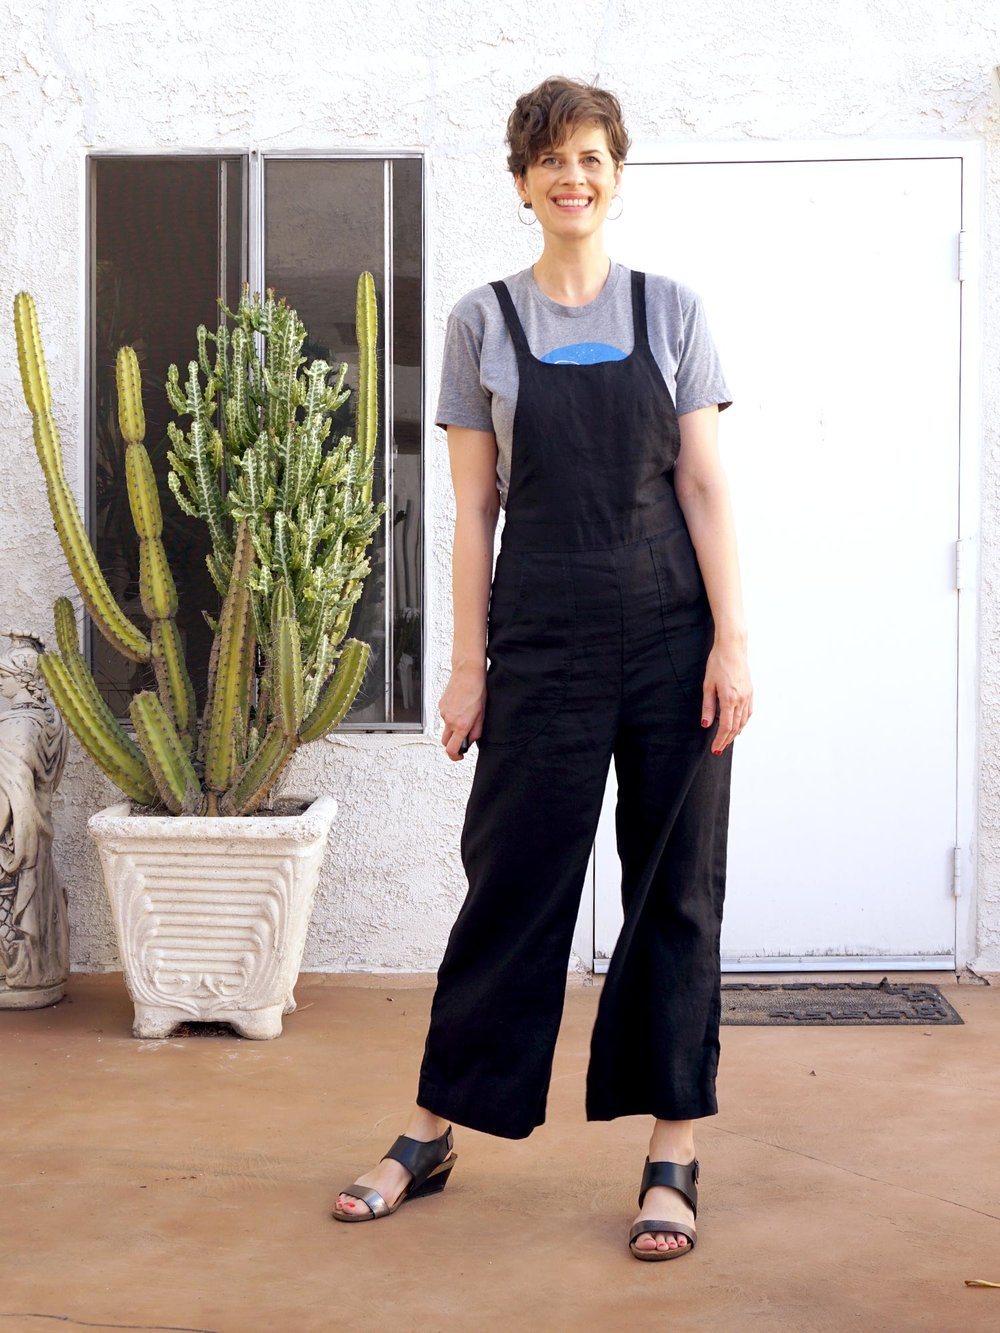 DIY Black Linen Overalls – A review of the Burnside Bibs pattern by Sew House 7 | Sew DIY